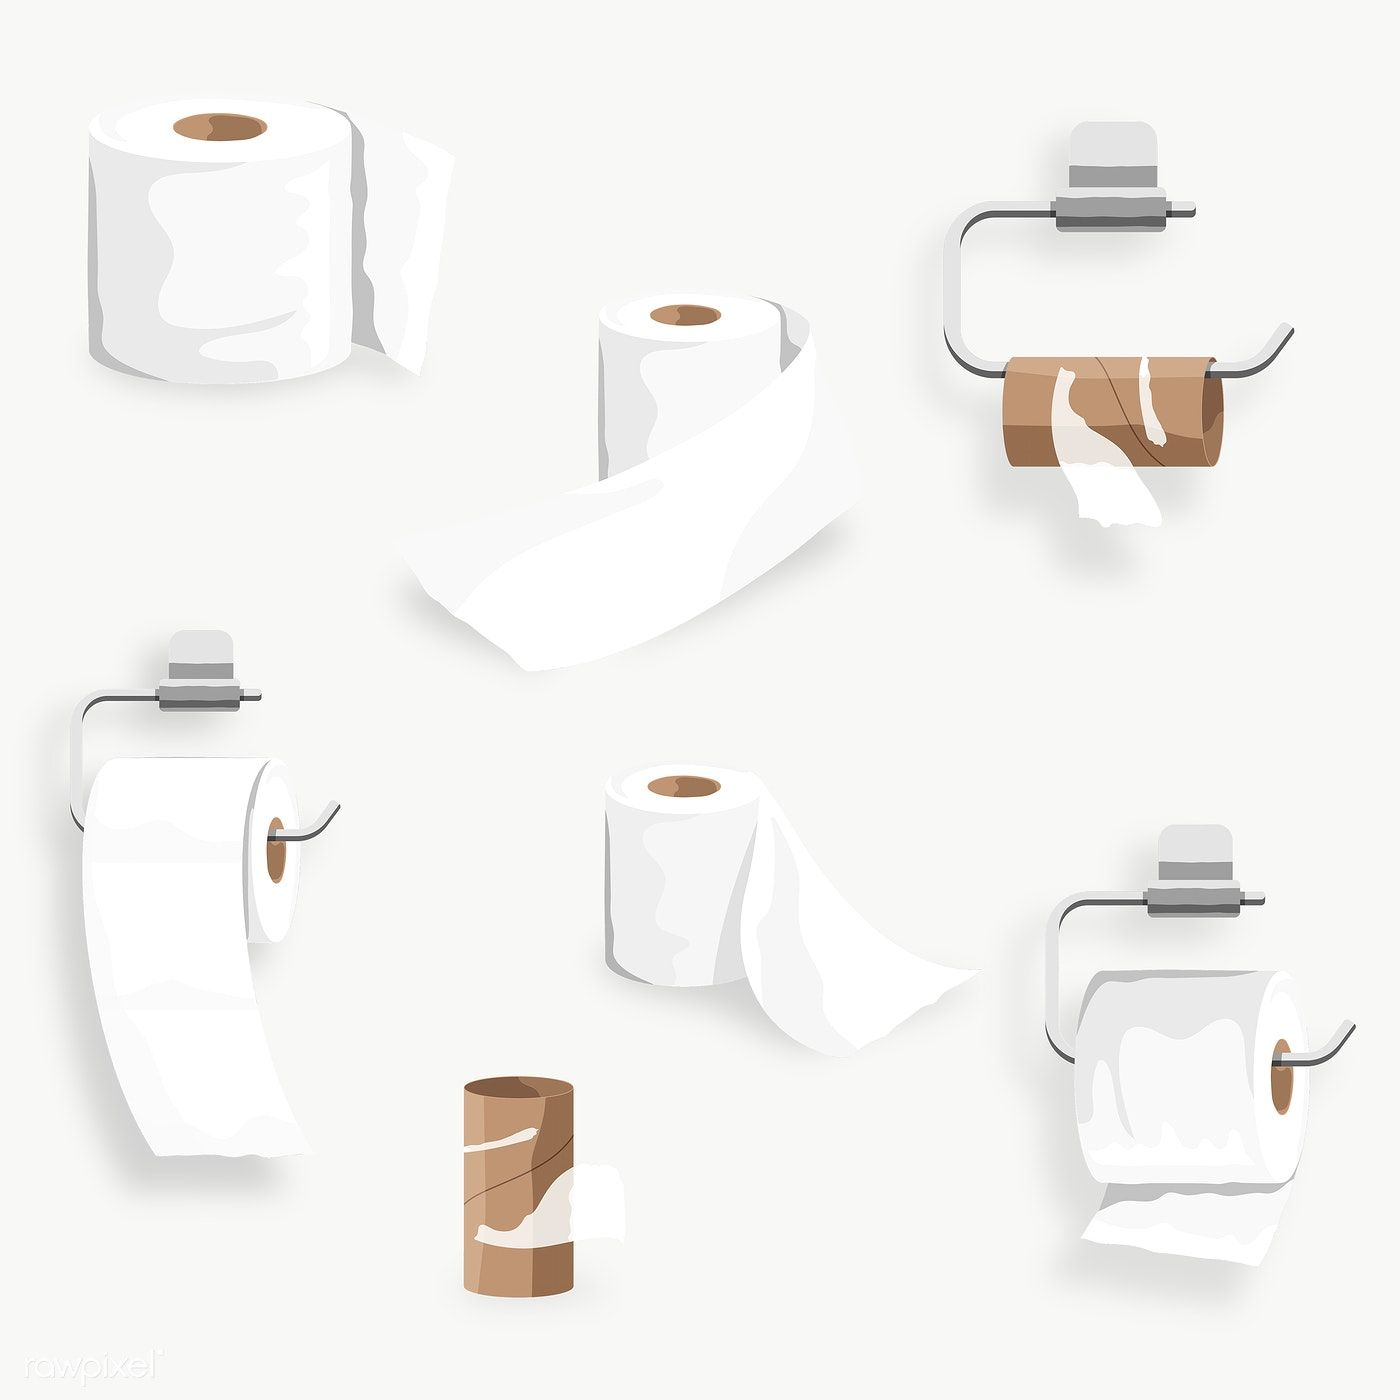 Toilet Tissue Roll Set Element Transparent Png Free Image By Rawpixel Com Aew Png Transparent Tissue